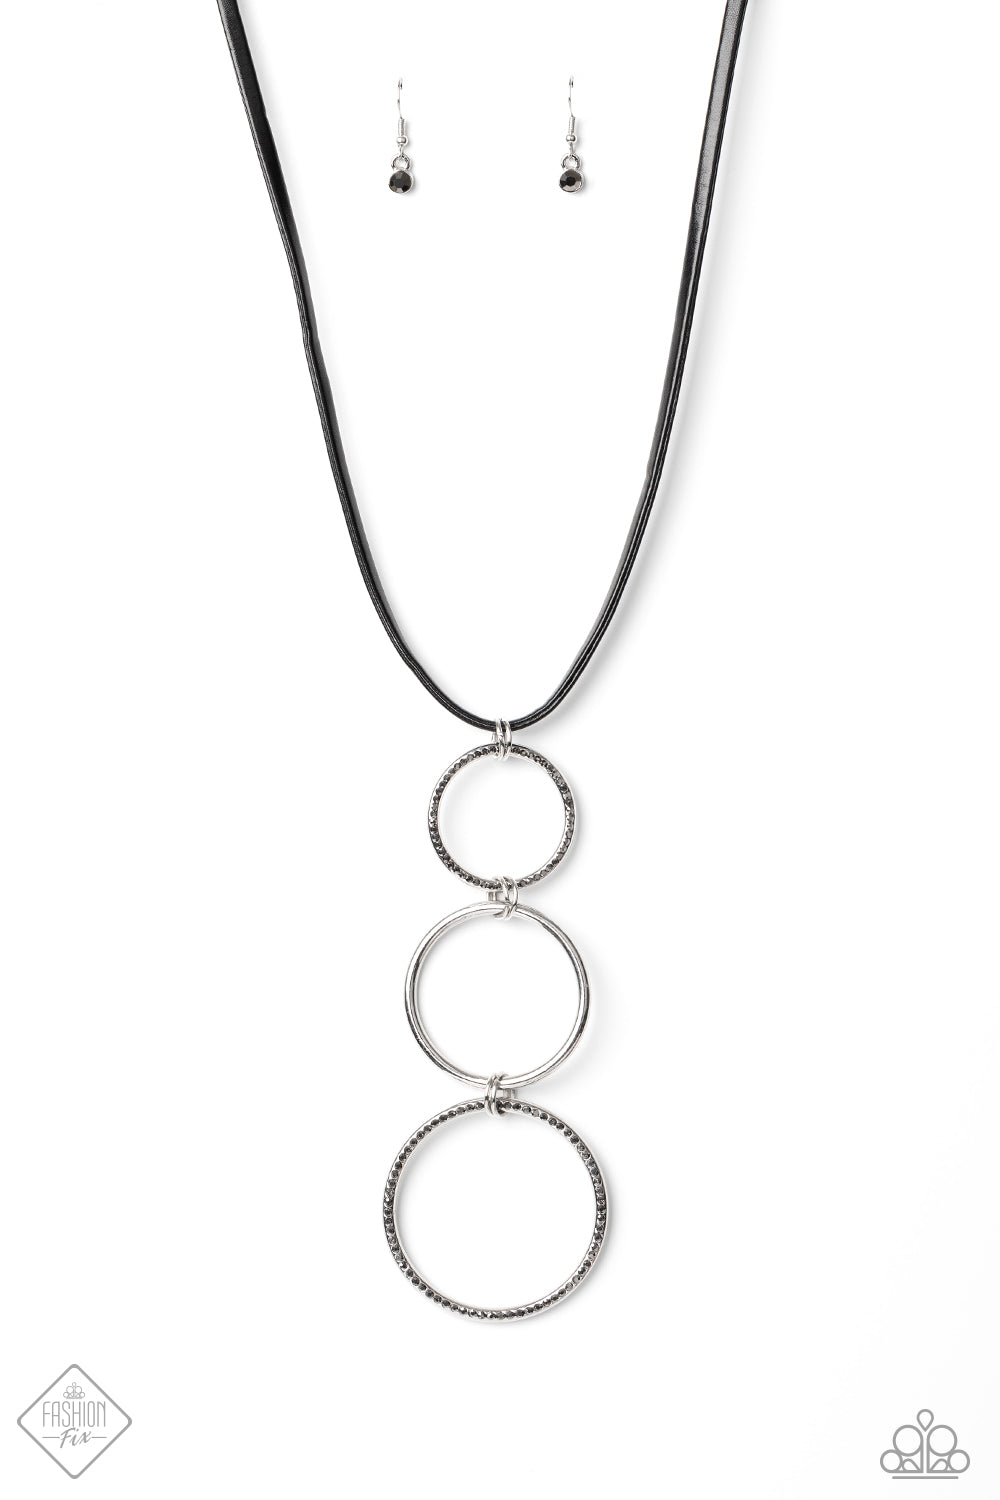 Curvy Couture Silver Necklace